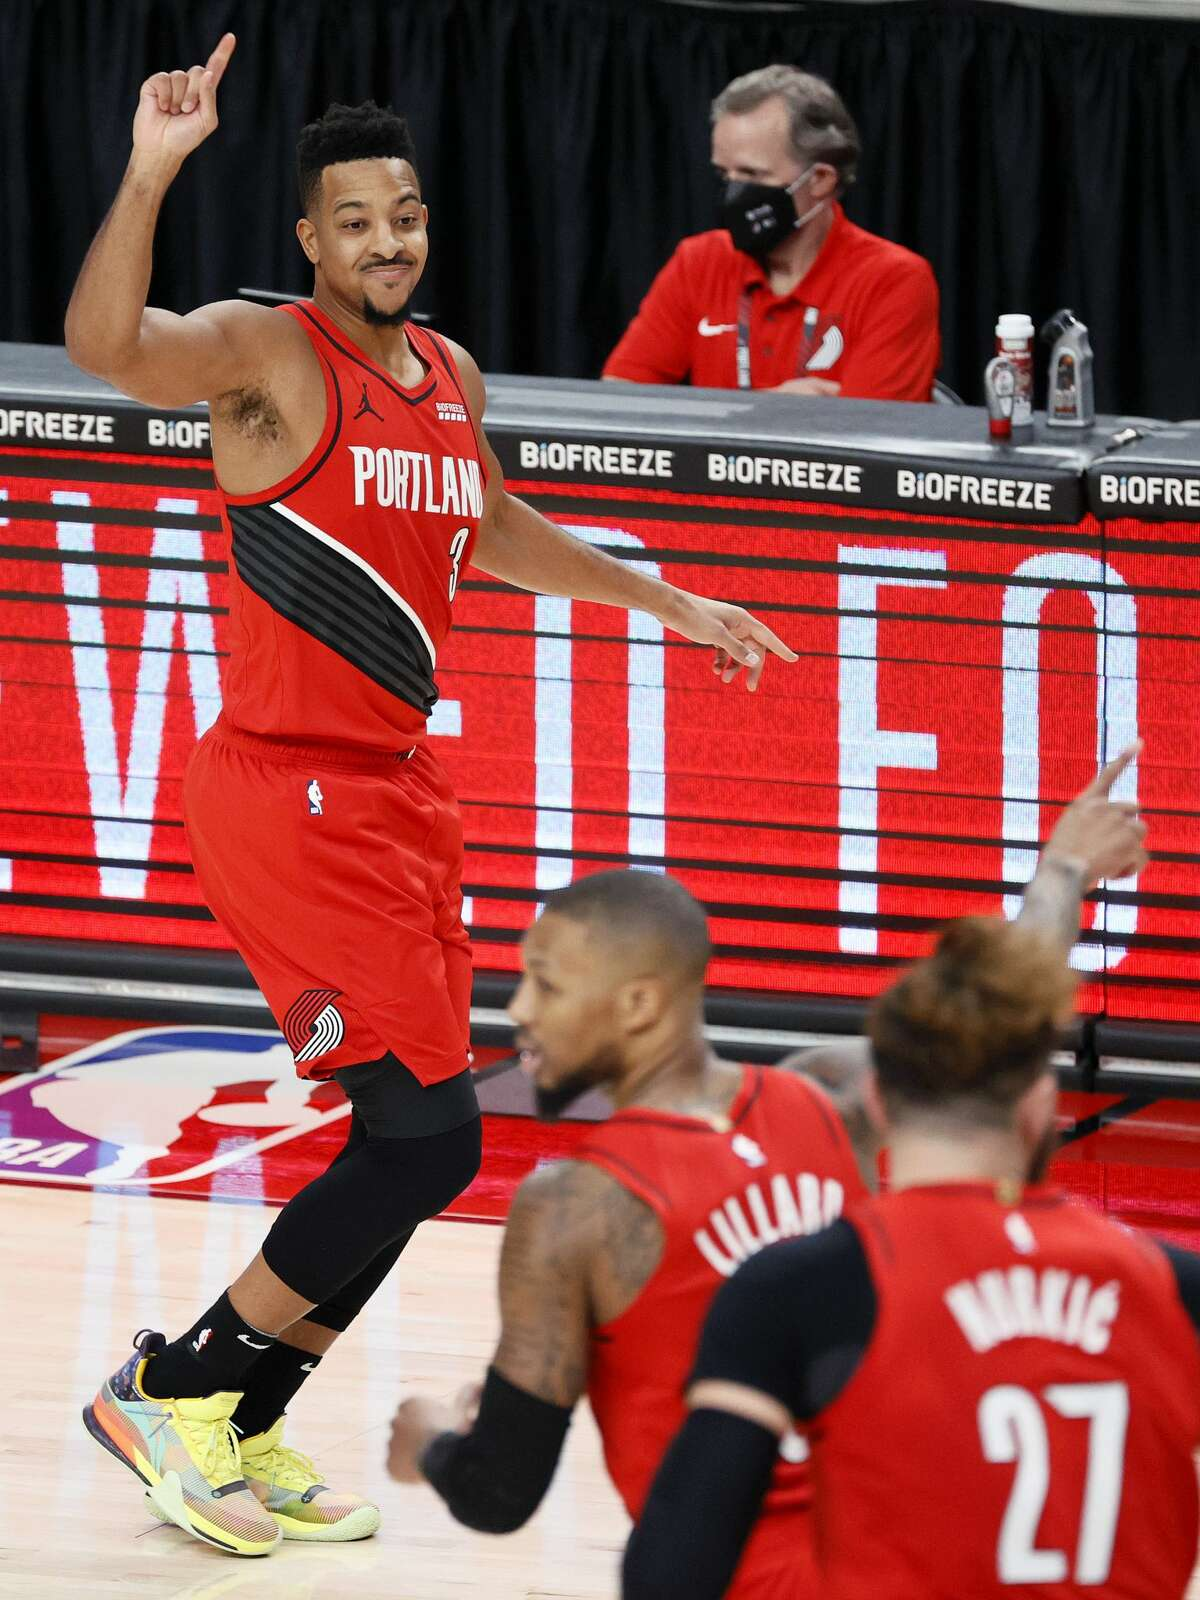 CJ McCollum #3 of the Portland Trail Blazers reacts after his three point basket against the Houston Rockets during the third quarter at Moda Center on December 26, 2020 in Portland, Oregon. (Photo by Steph Chambers/Getty Images)